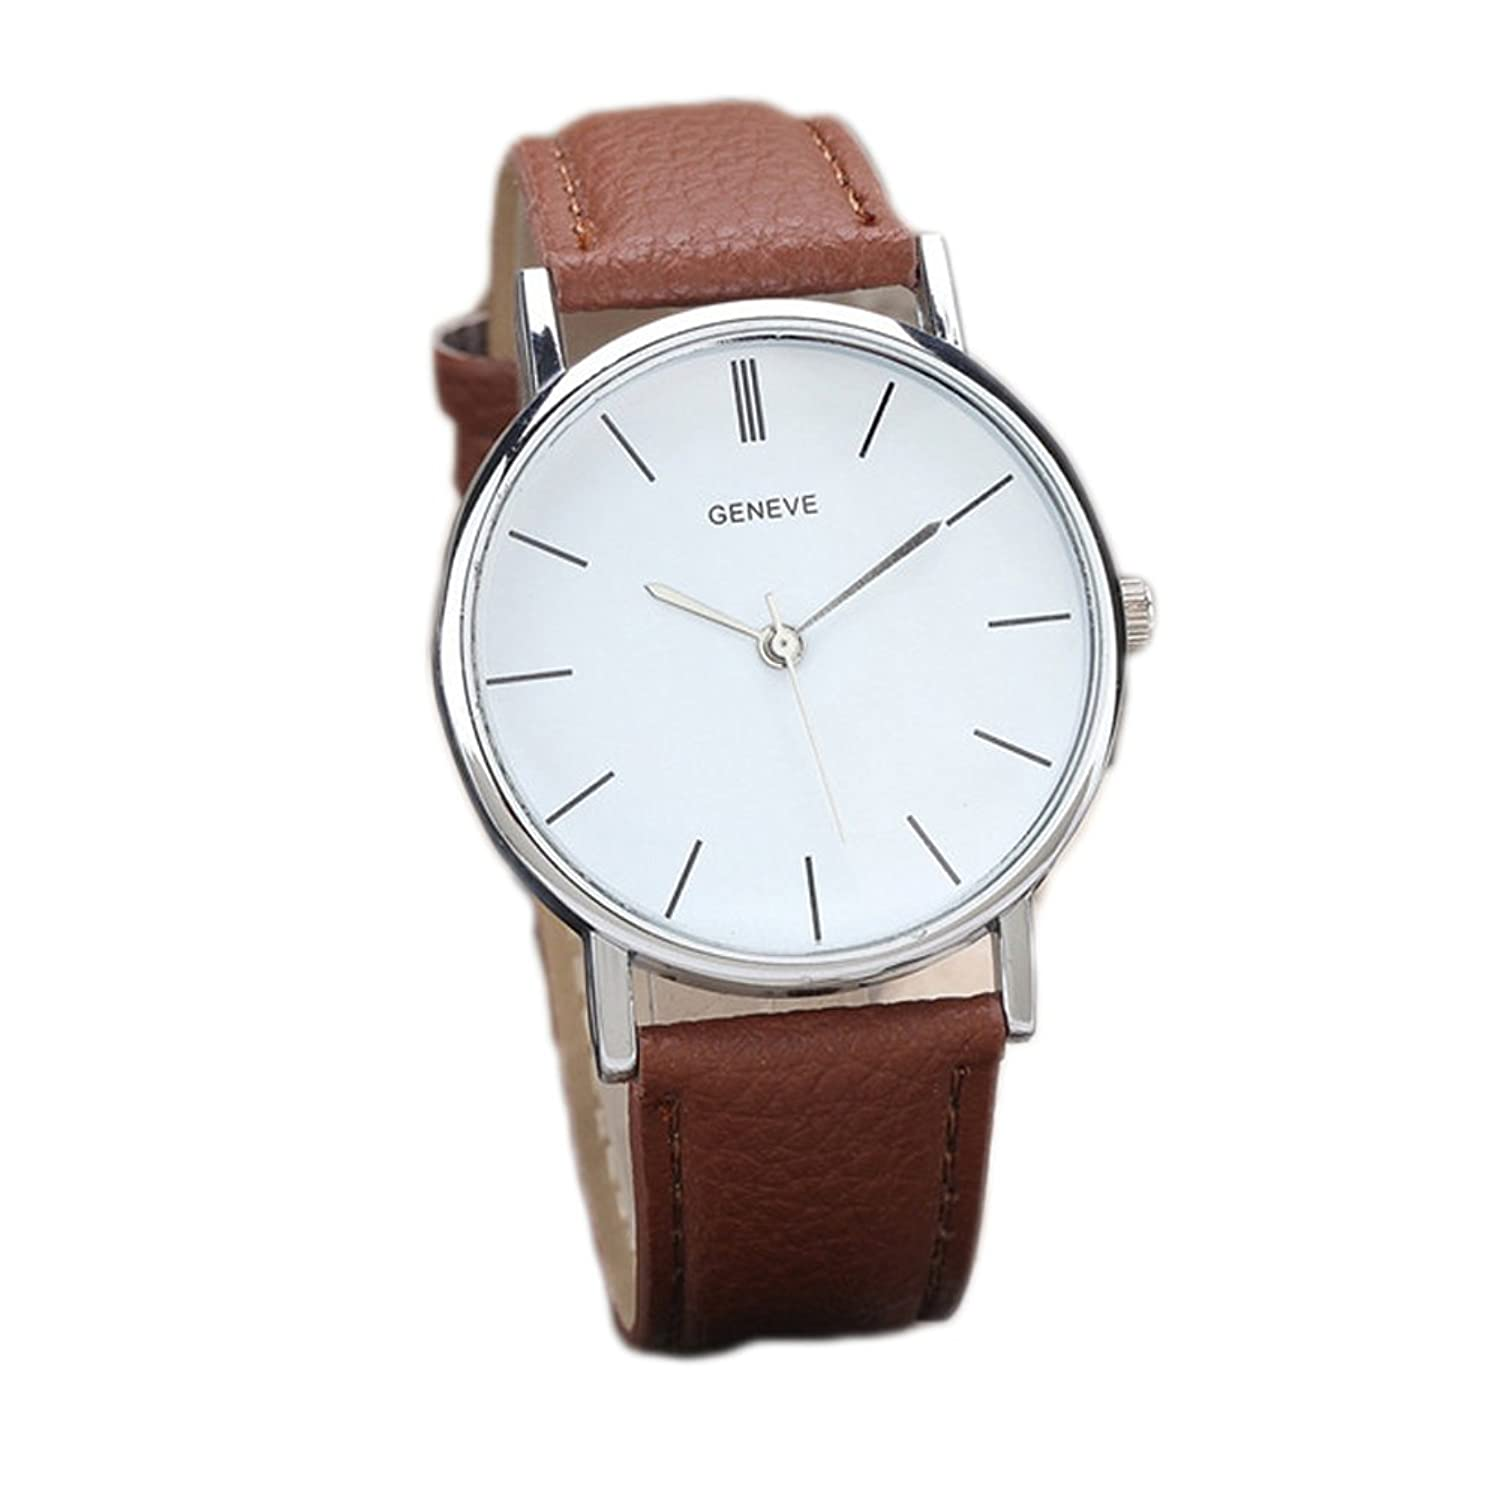 Wangyue Vintage Design Leather Band Analog Alloy Quartz Wrist Watch Brown